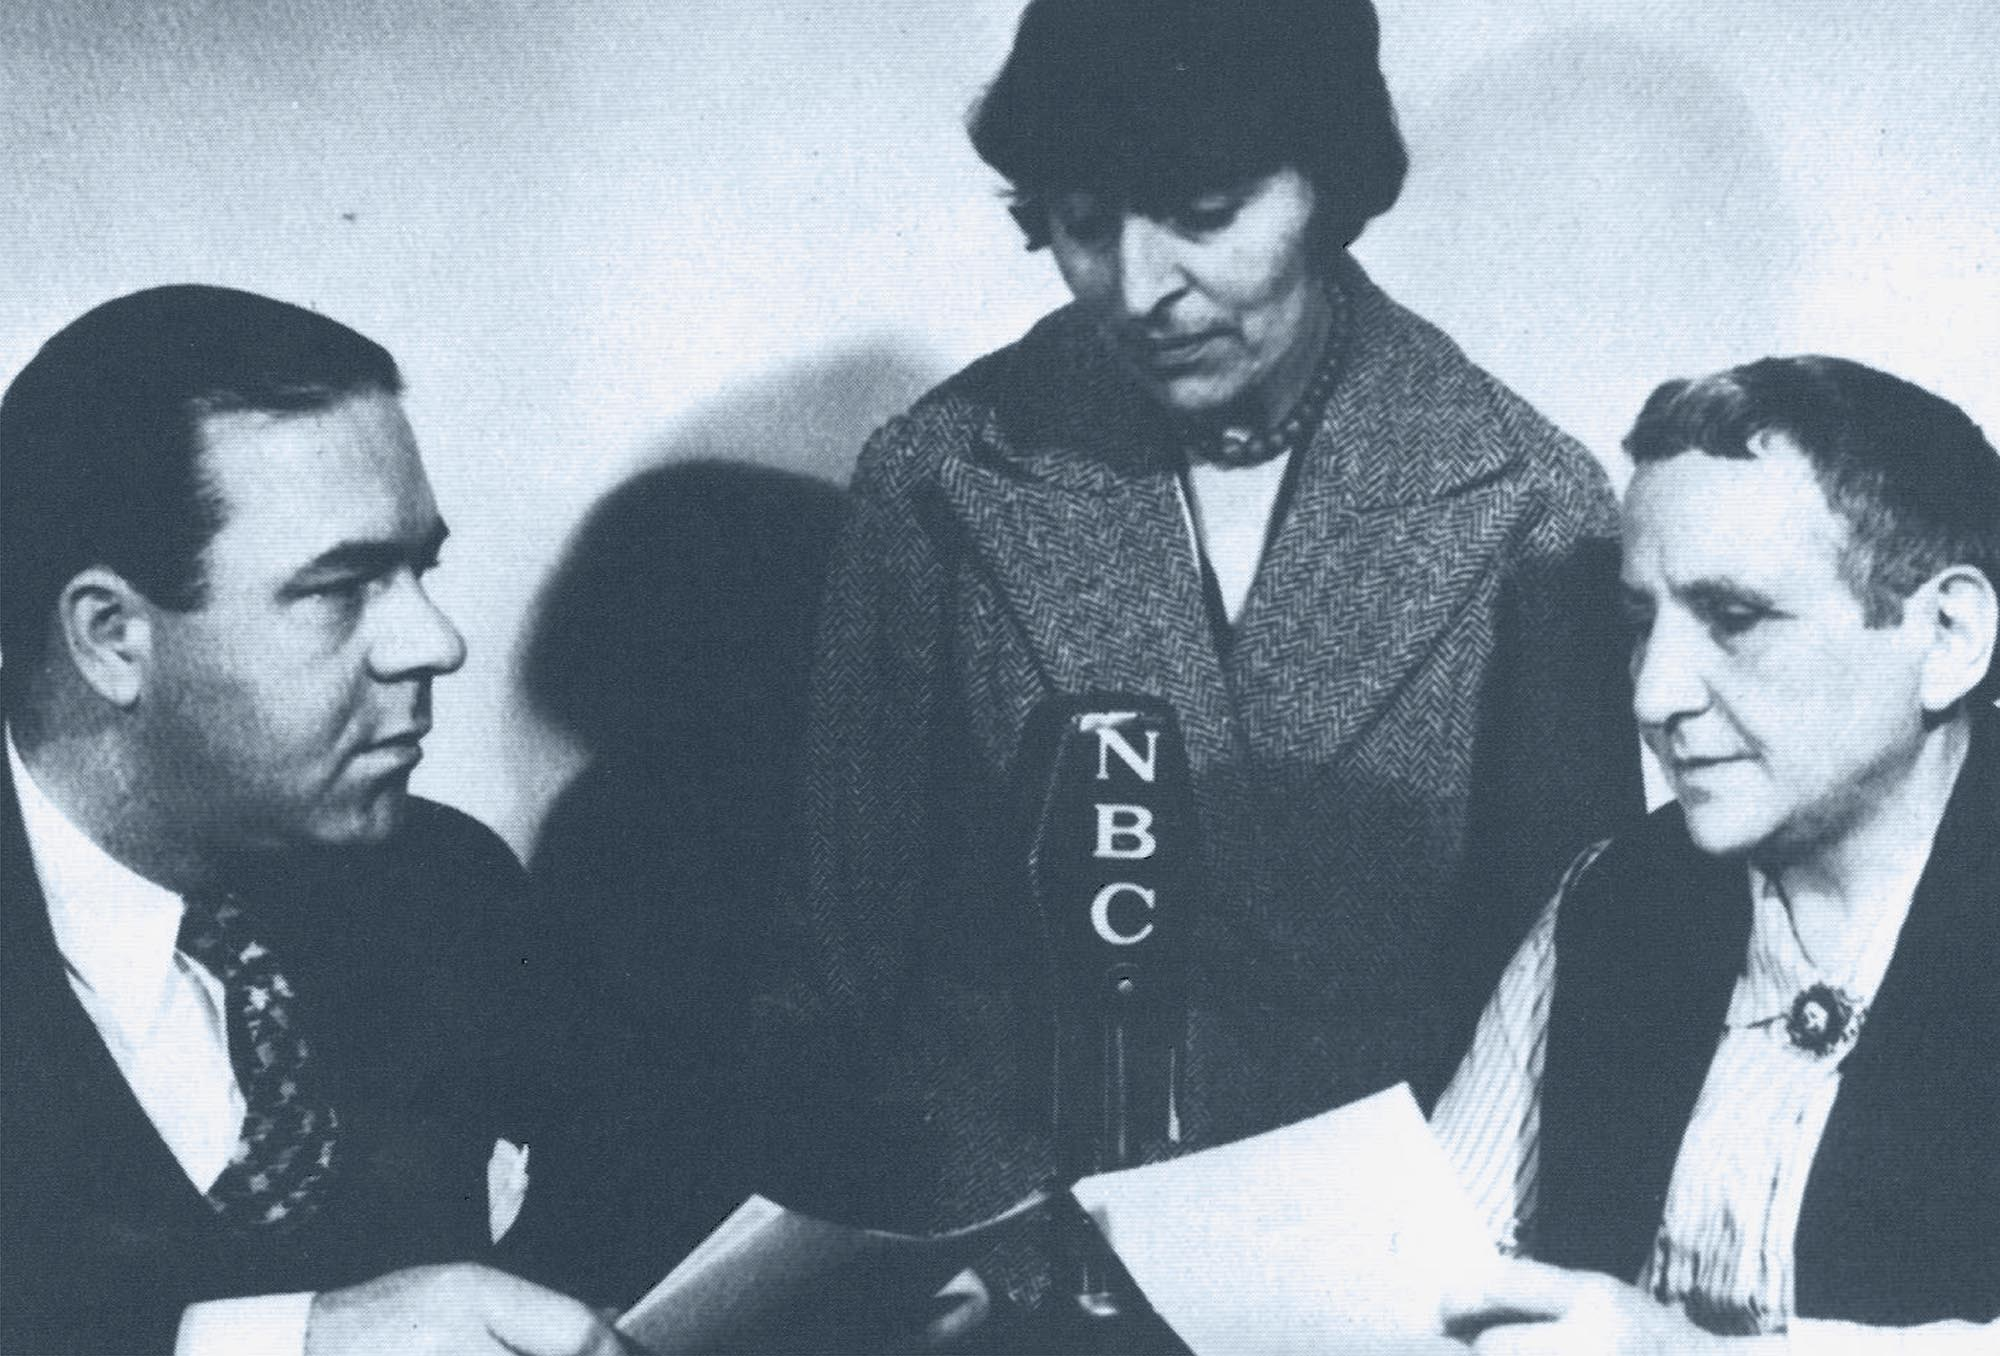 Gertrude Stein & Alice B. Toklas give an NBC interview.